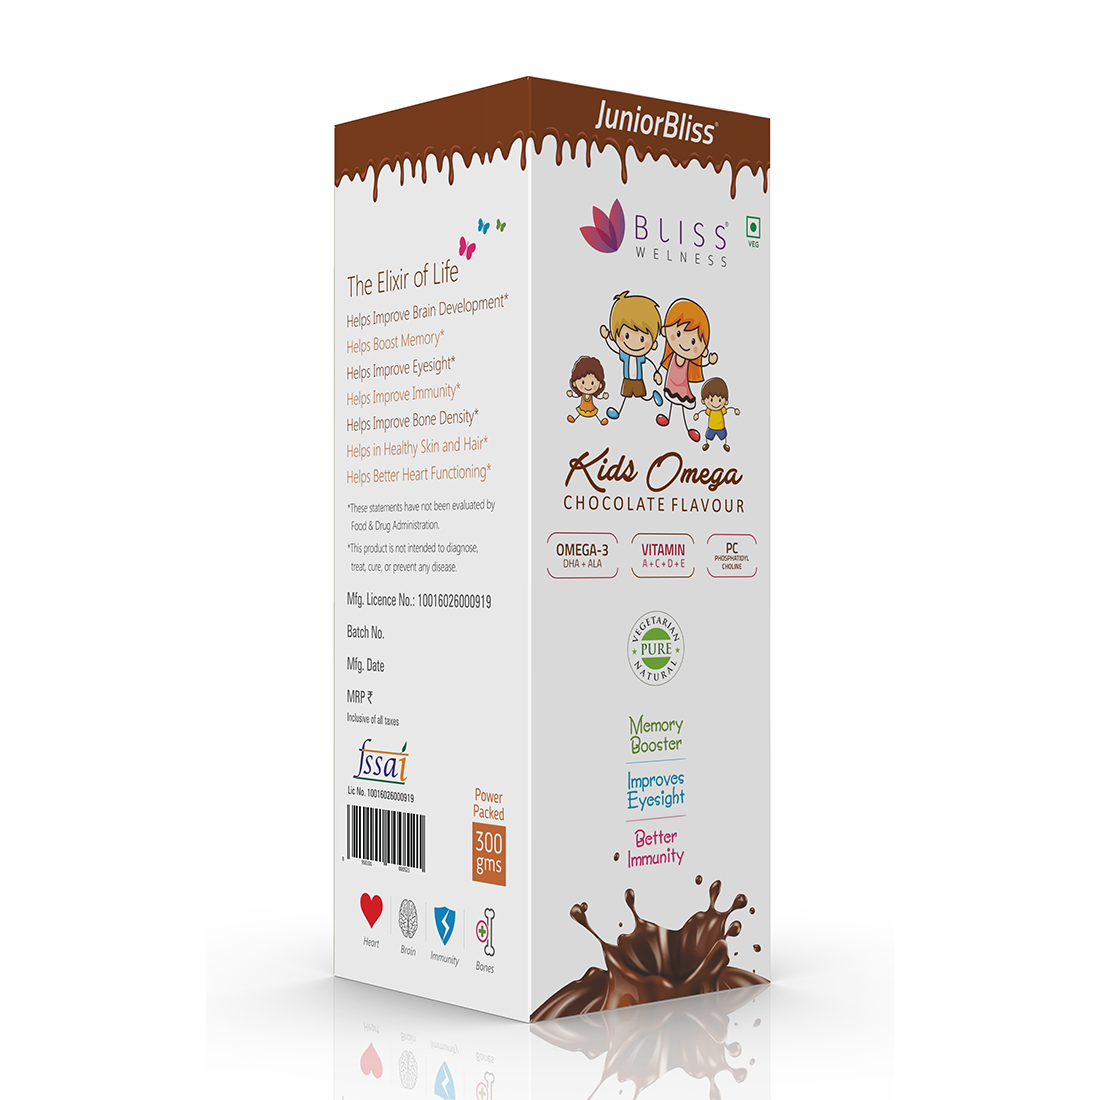 Bliss Welness 'JuniorBliss' Kids Omega 3 6 9 + DHA Chocolate Syrup with Vitamins A C D E & PC35